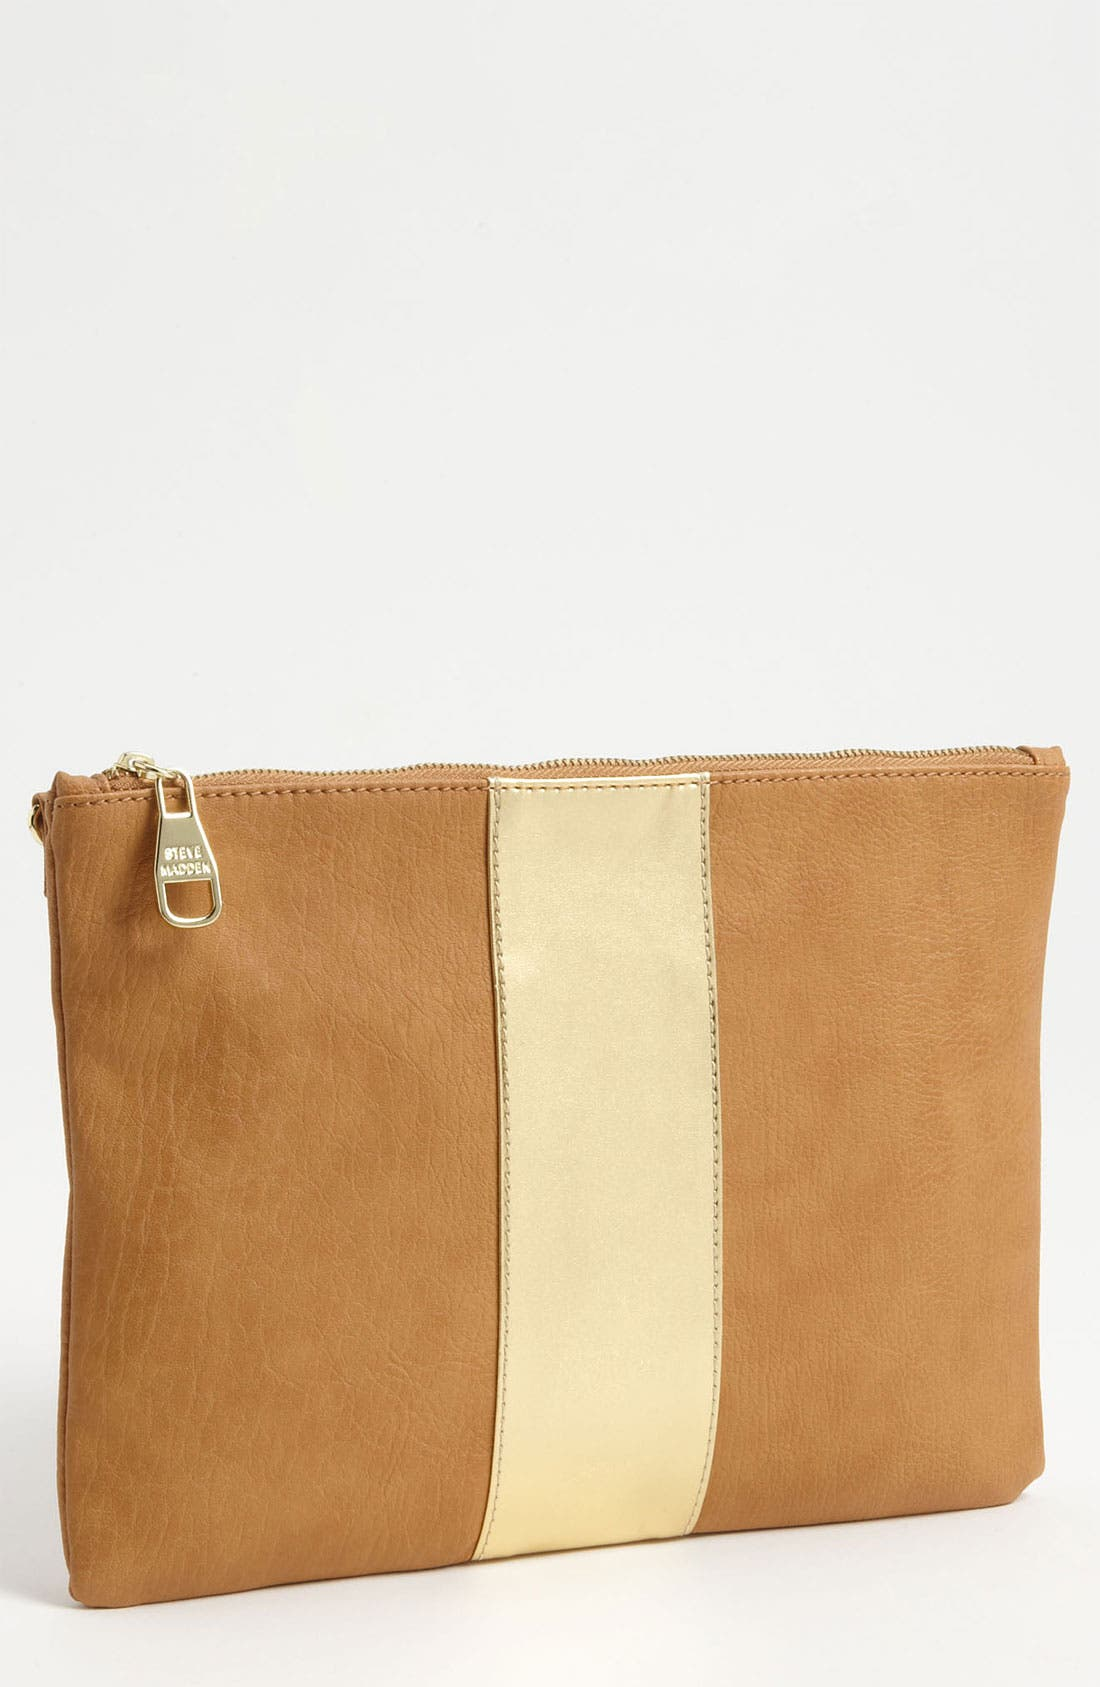 Alternate Image 1 Selected - Steve Madden 'Stylarr' Clutch